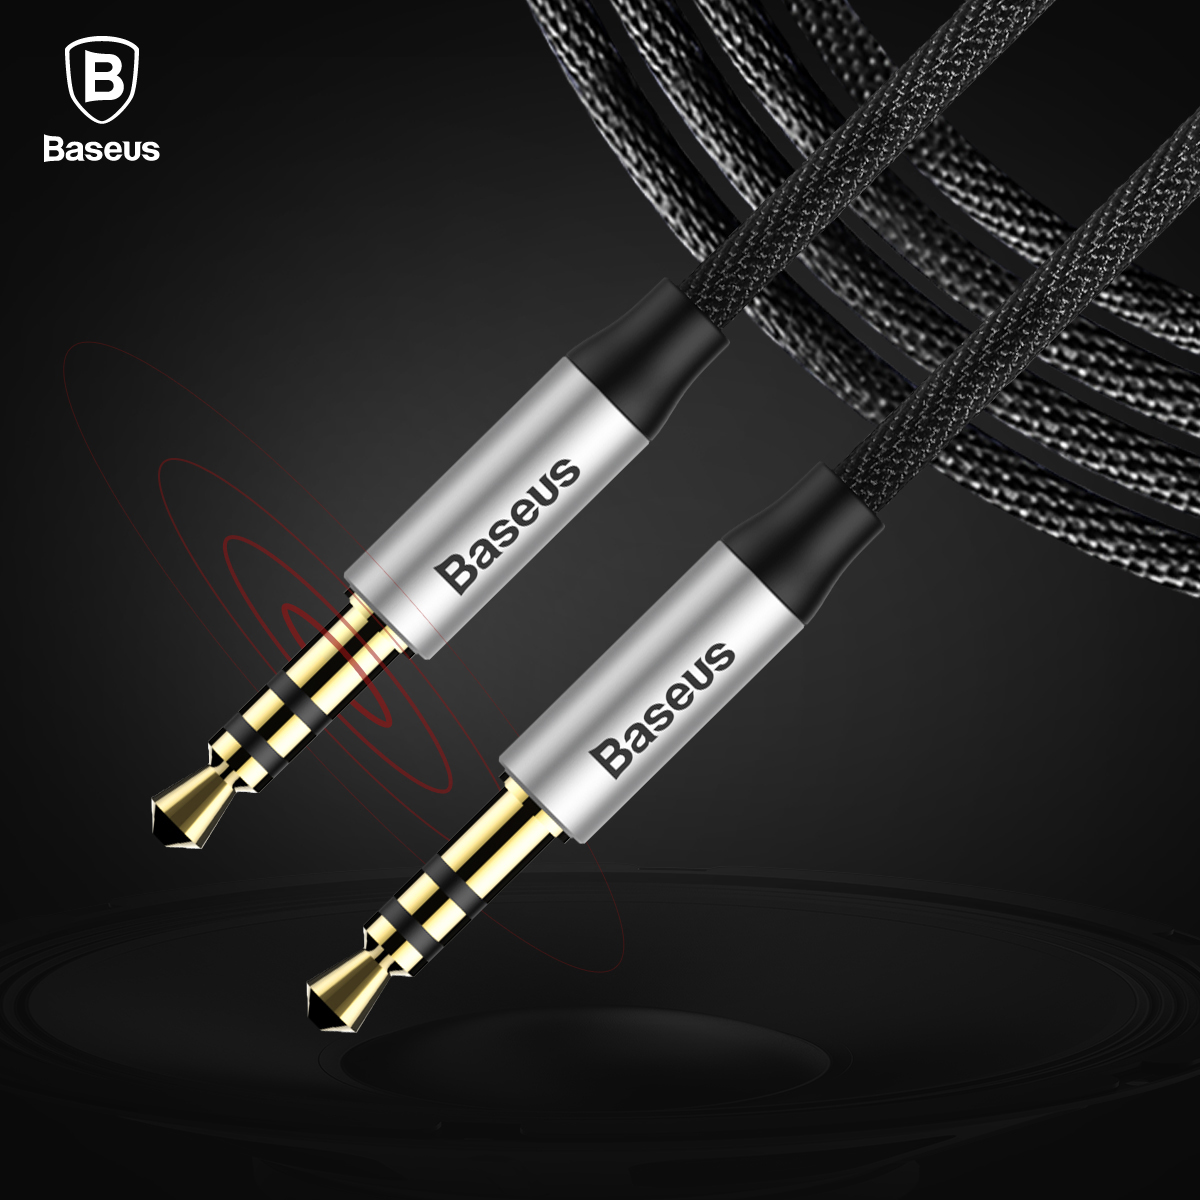 Baseus 35mm Gold Plated Audio Cable Music Series Black For Iphone